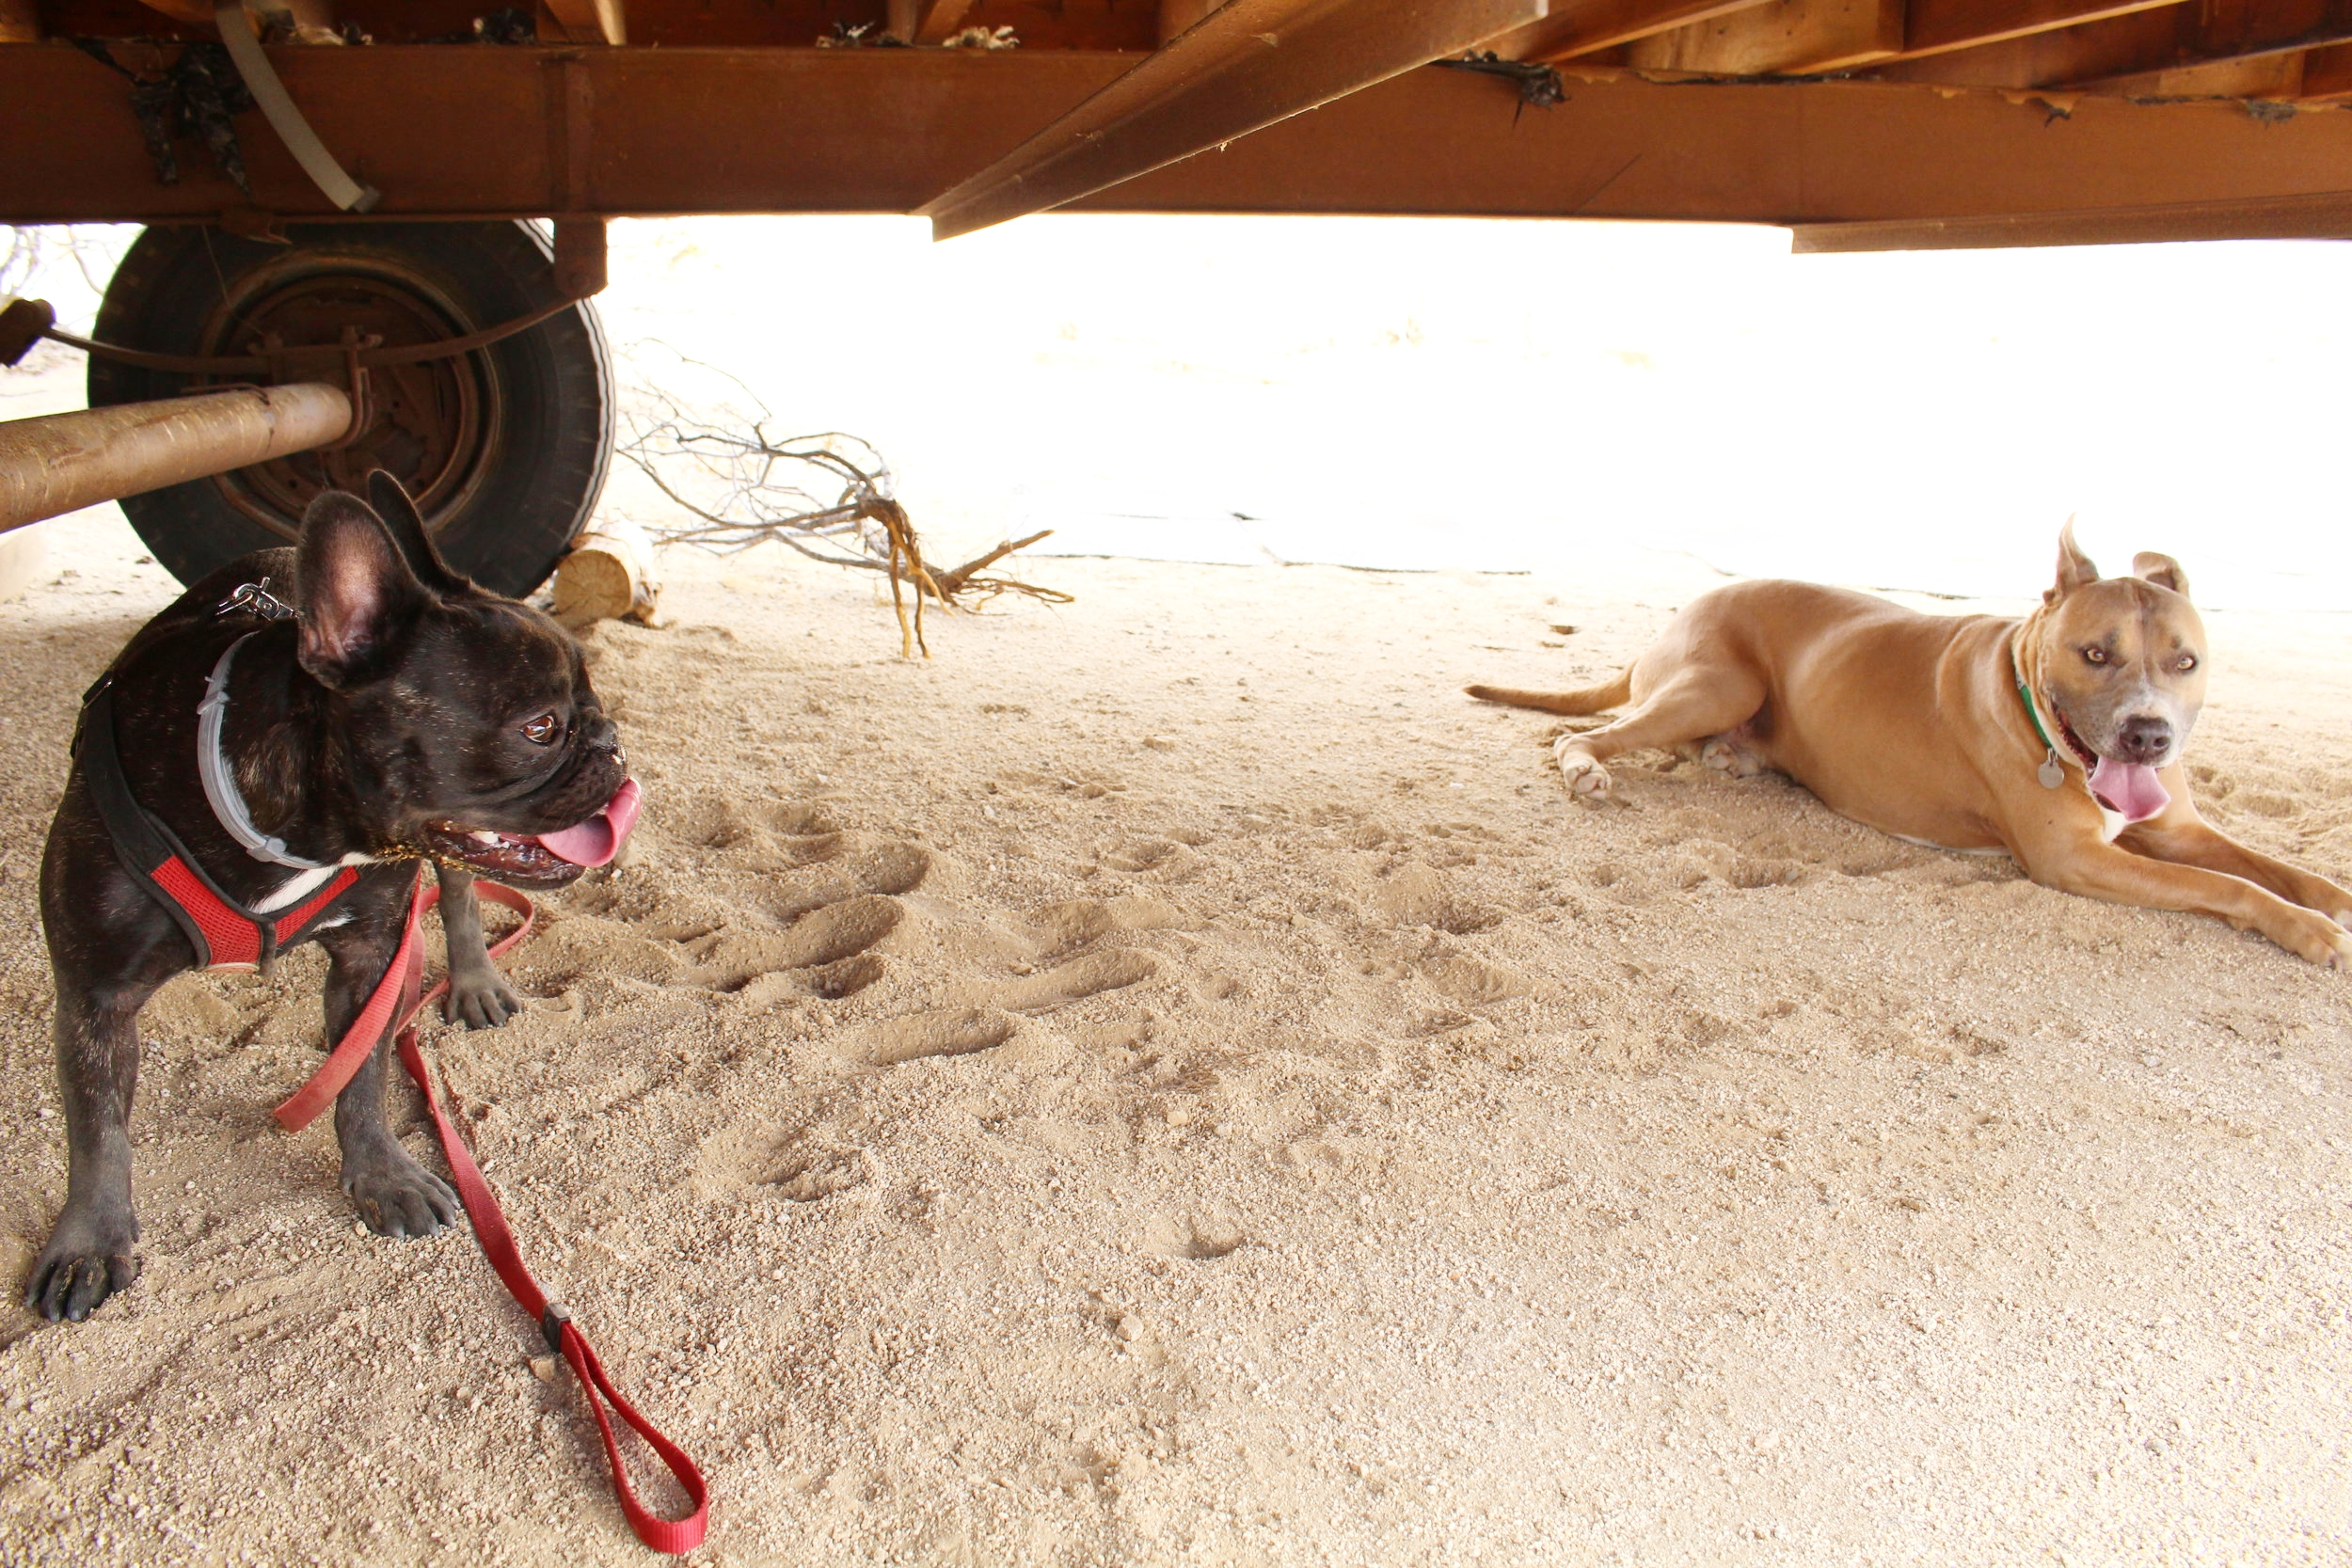 Willie and Mia keeping cool in the shade under the trailer